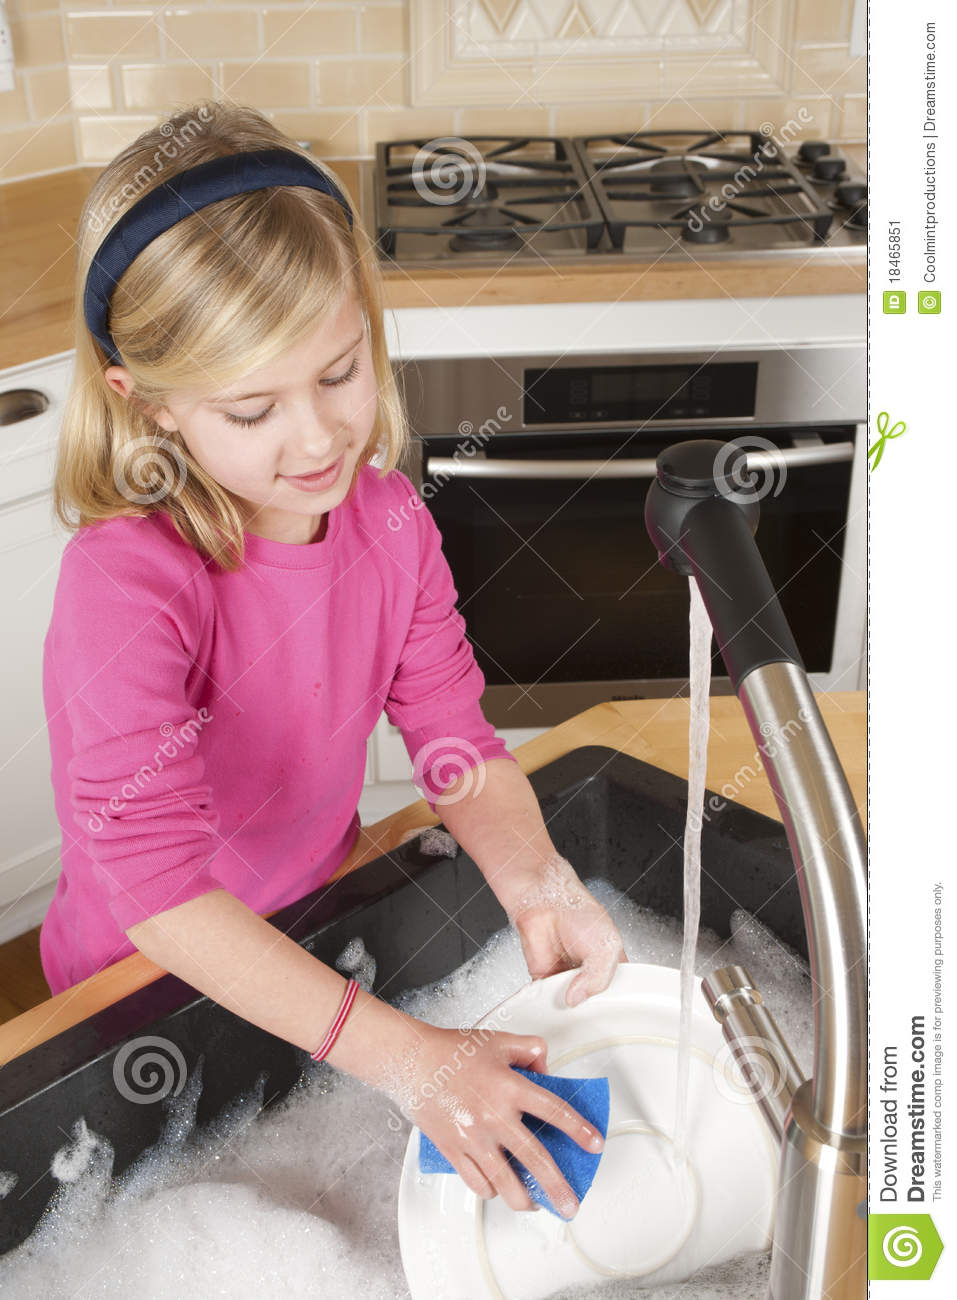 Young Girl Washing Dishes Stock Image Image Of Help 18465851